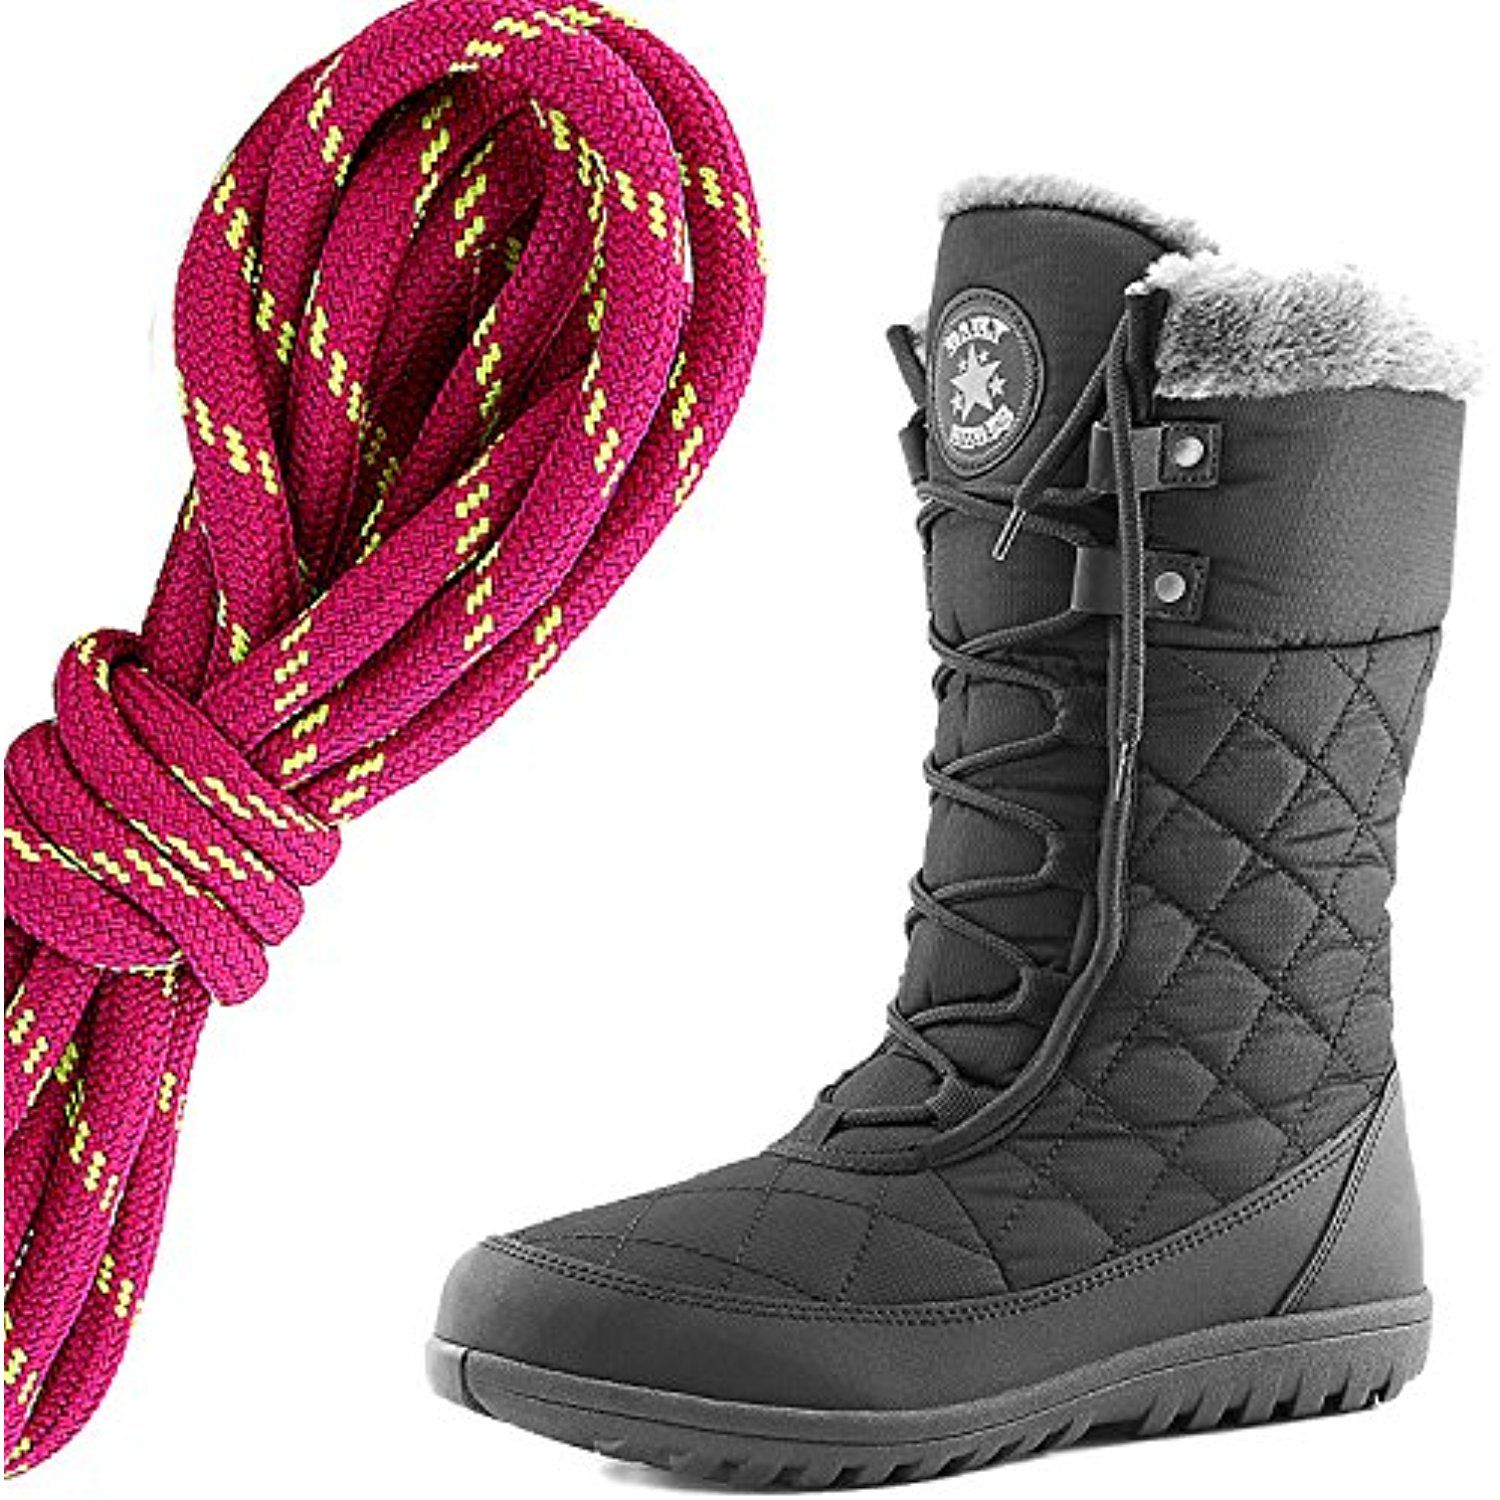 Women's Comfortable Round Toe Flat Ankle High Eskimo Winter Fur Snow Boots Hot Pink Lime